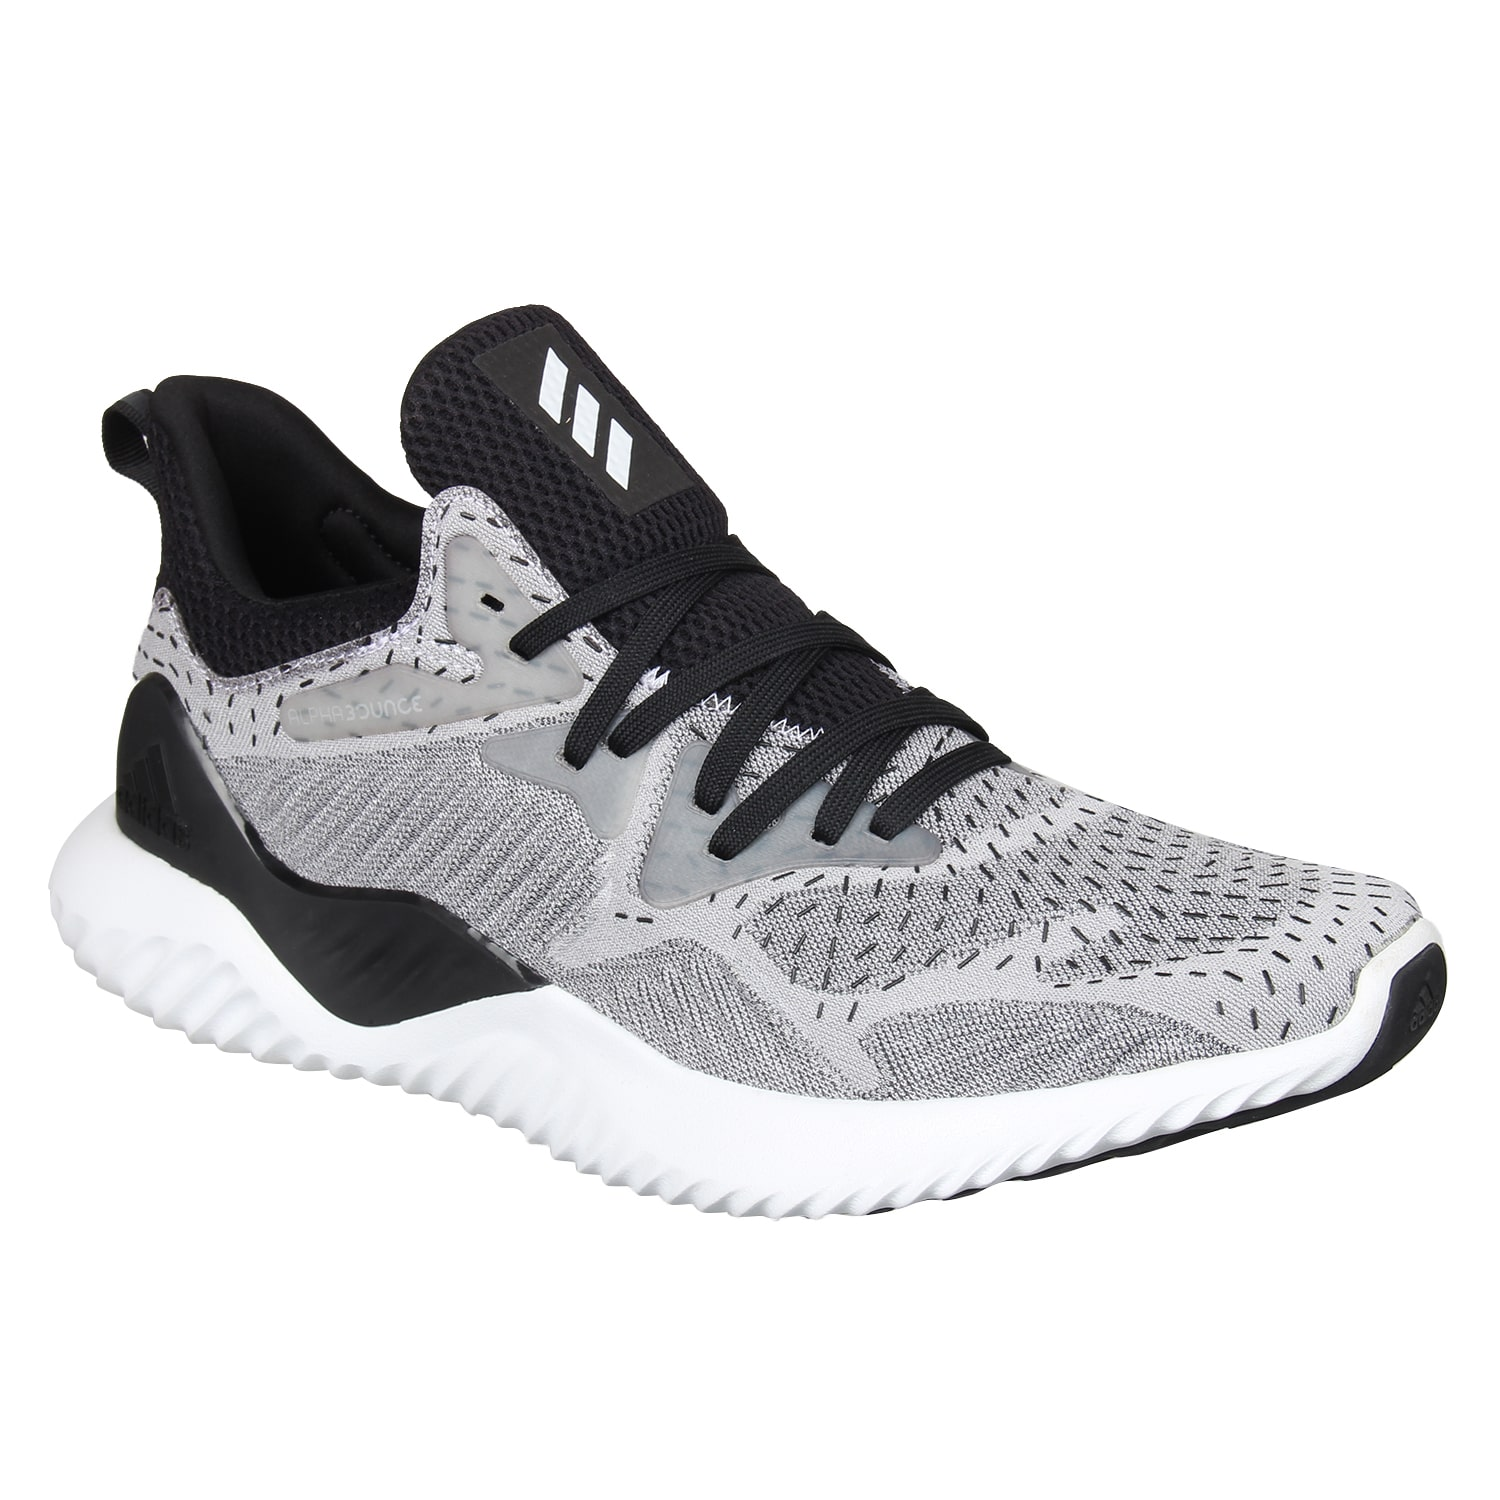 b624e09e7 https   assetscdn1.paytm.com images catalog product . Adidas Men White  Running Shoes - Db1126